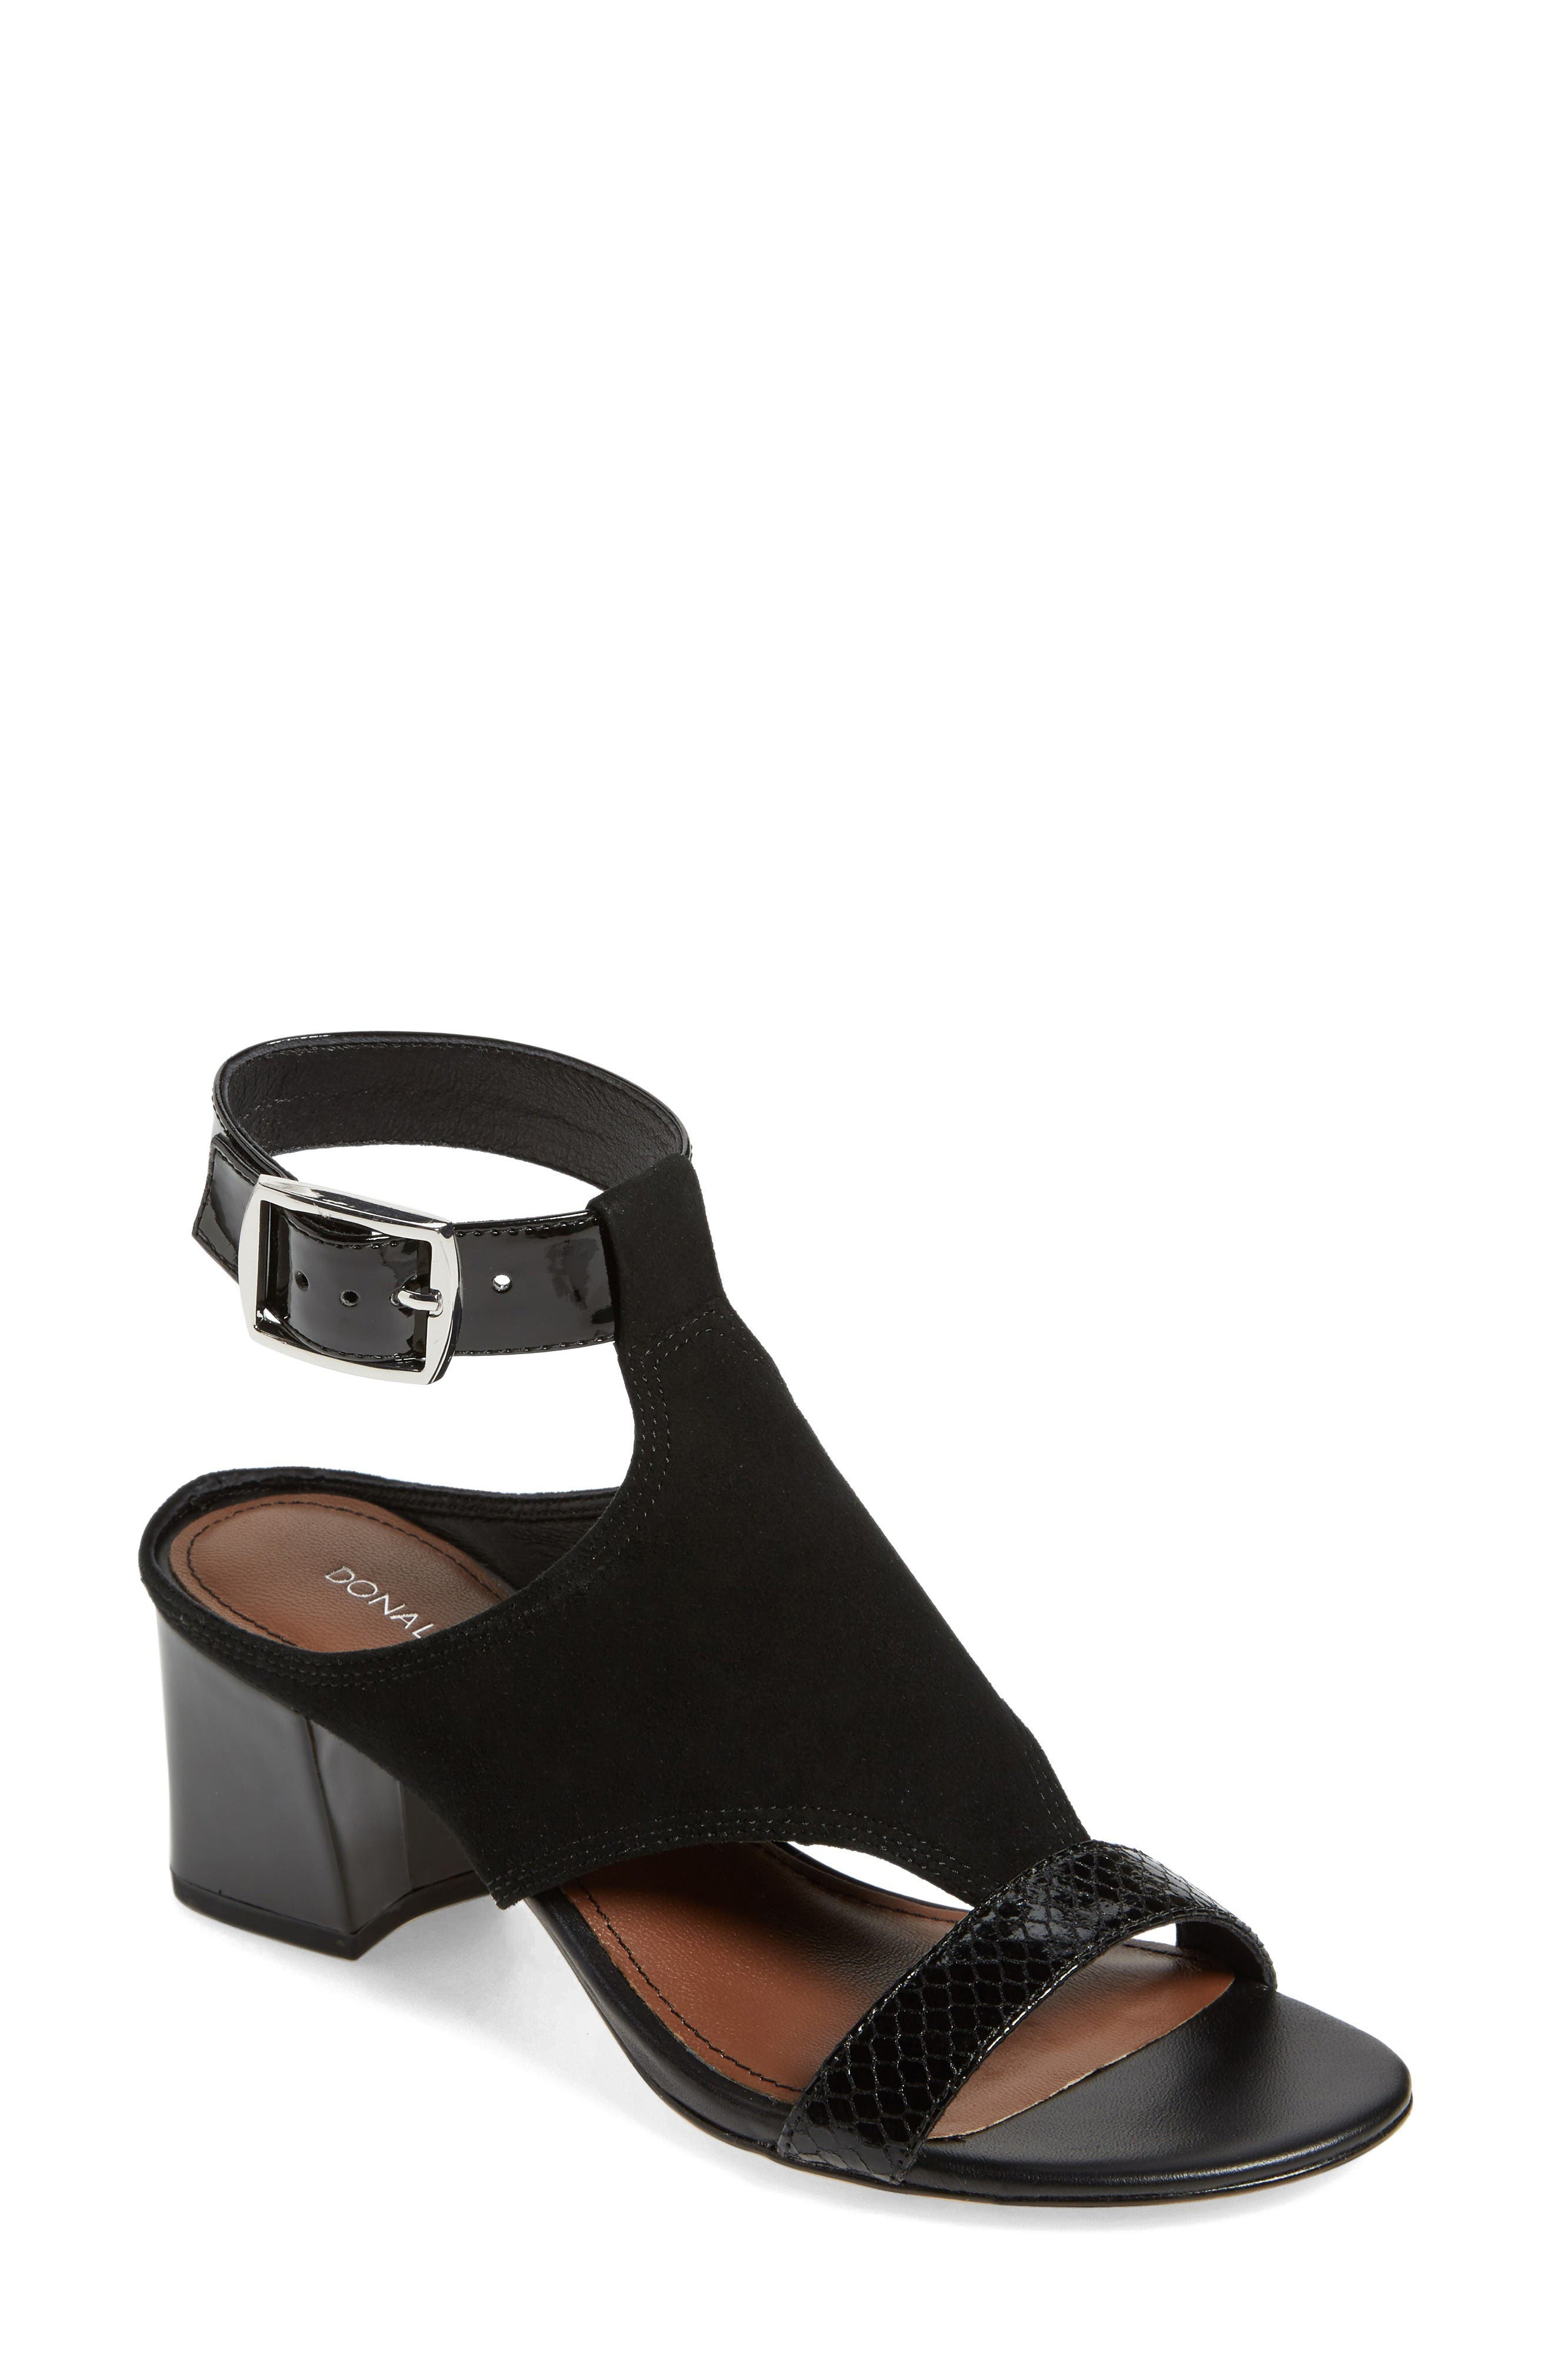 Alternate Image 1 Selected - Donald J Pliner Ellee Block Heel Sandal (Women)